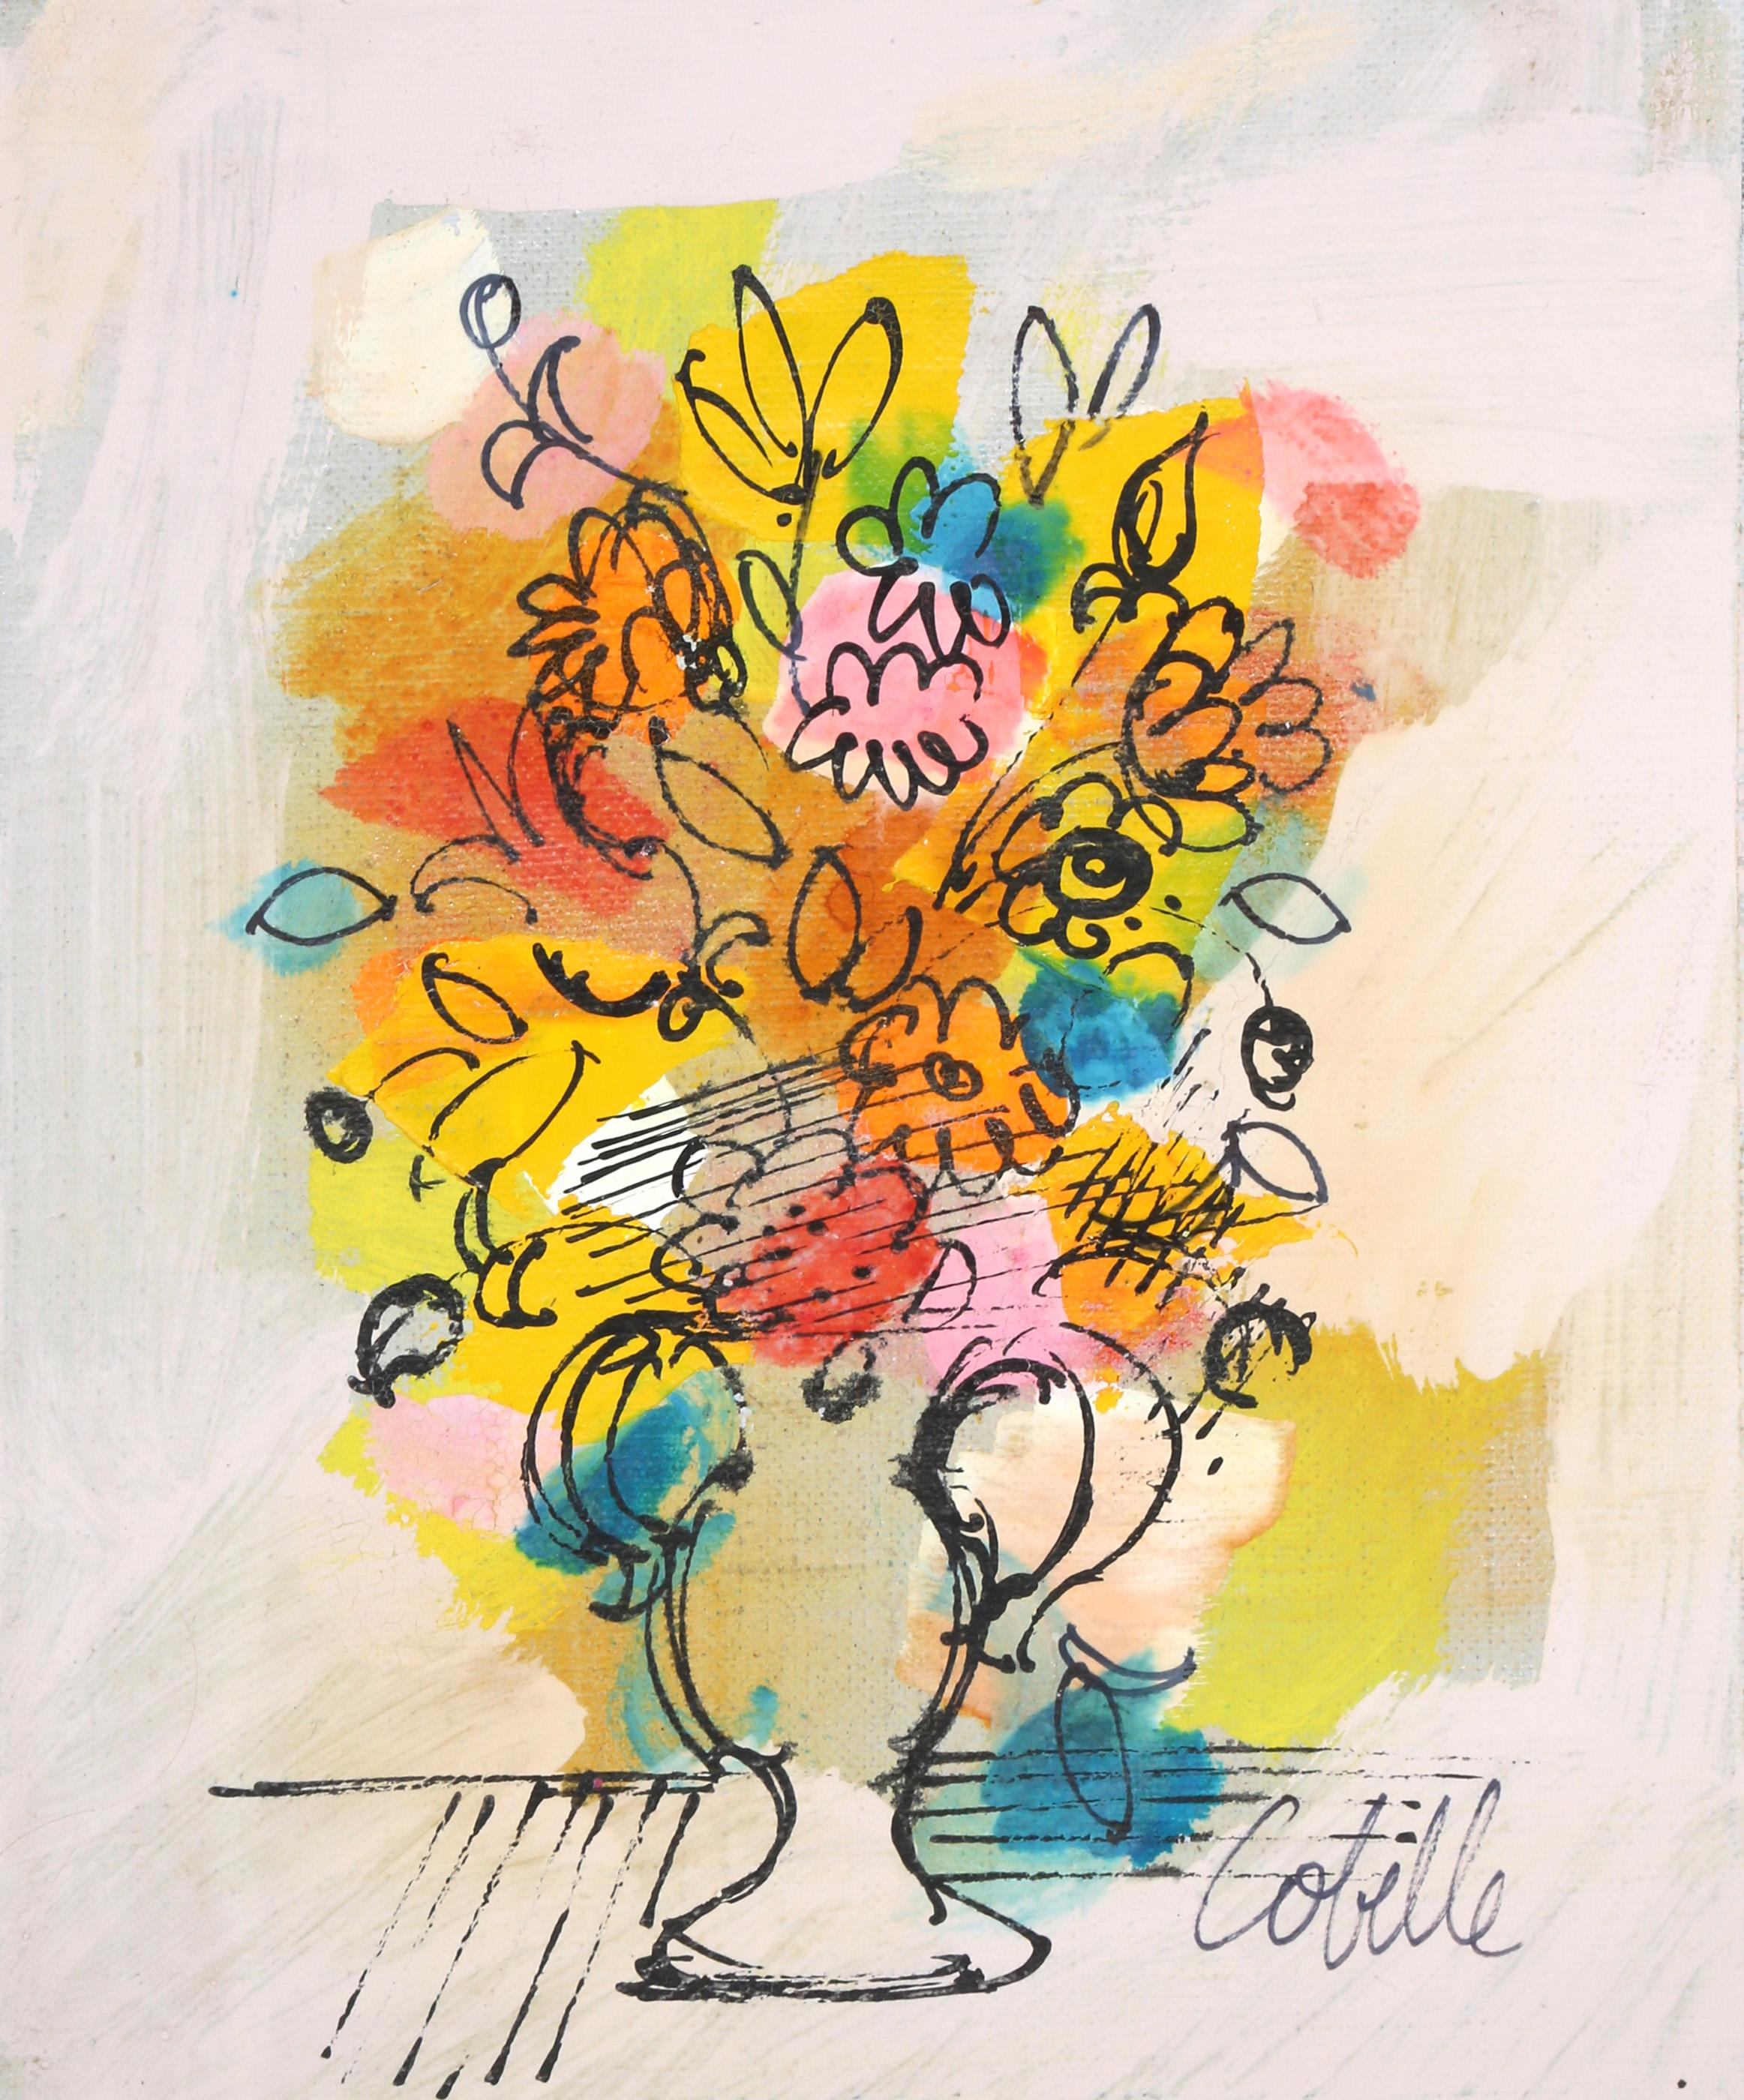 Charles Cobelle, Vase with Flowers (Yellow and Teal), Acrylic Painting